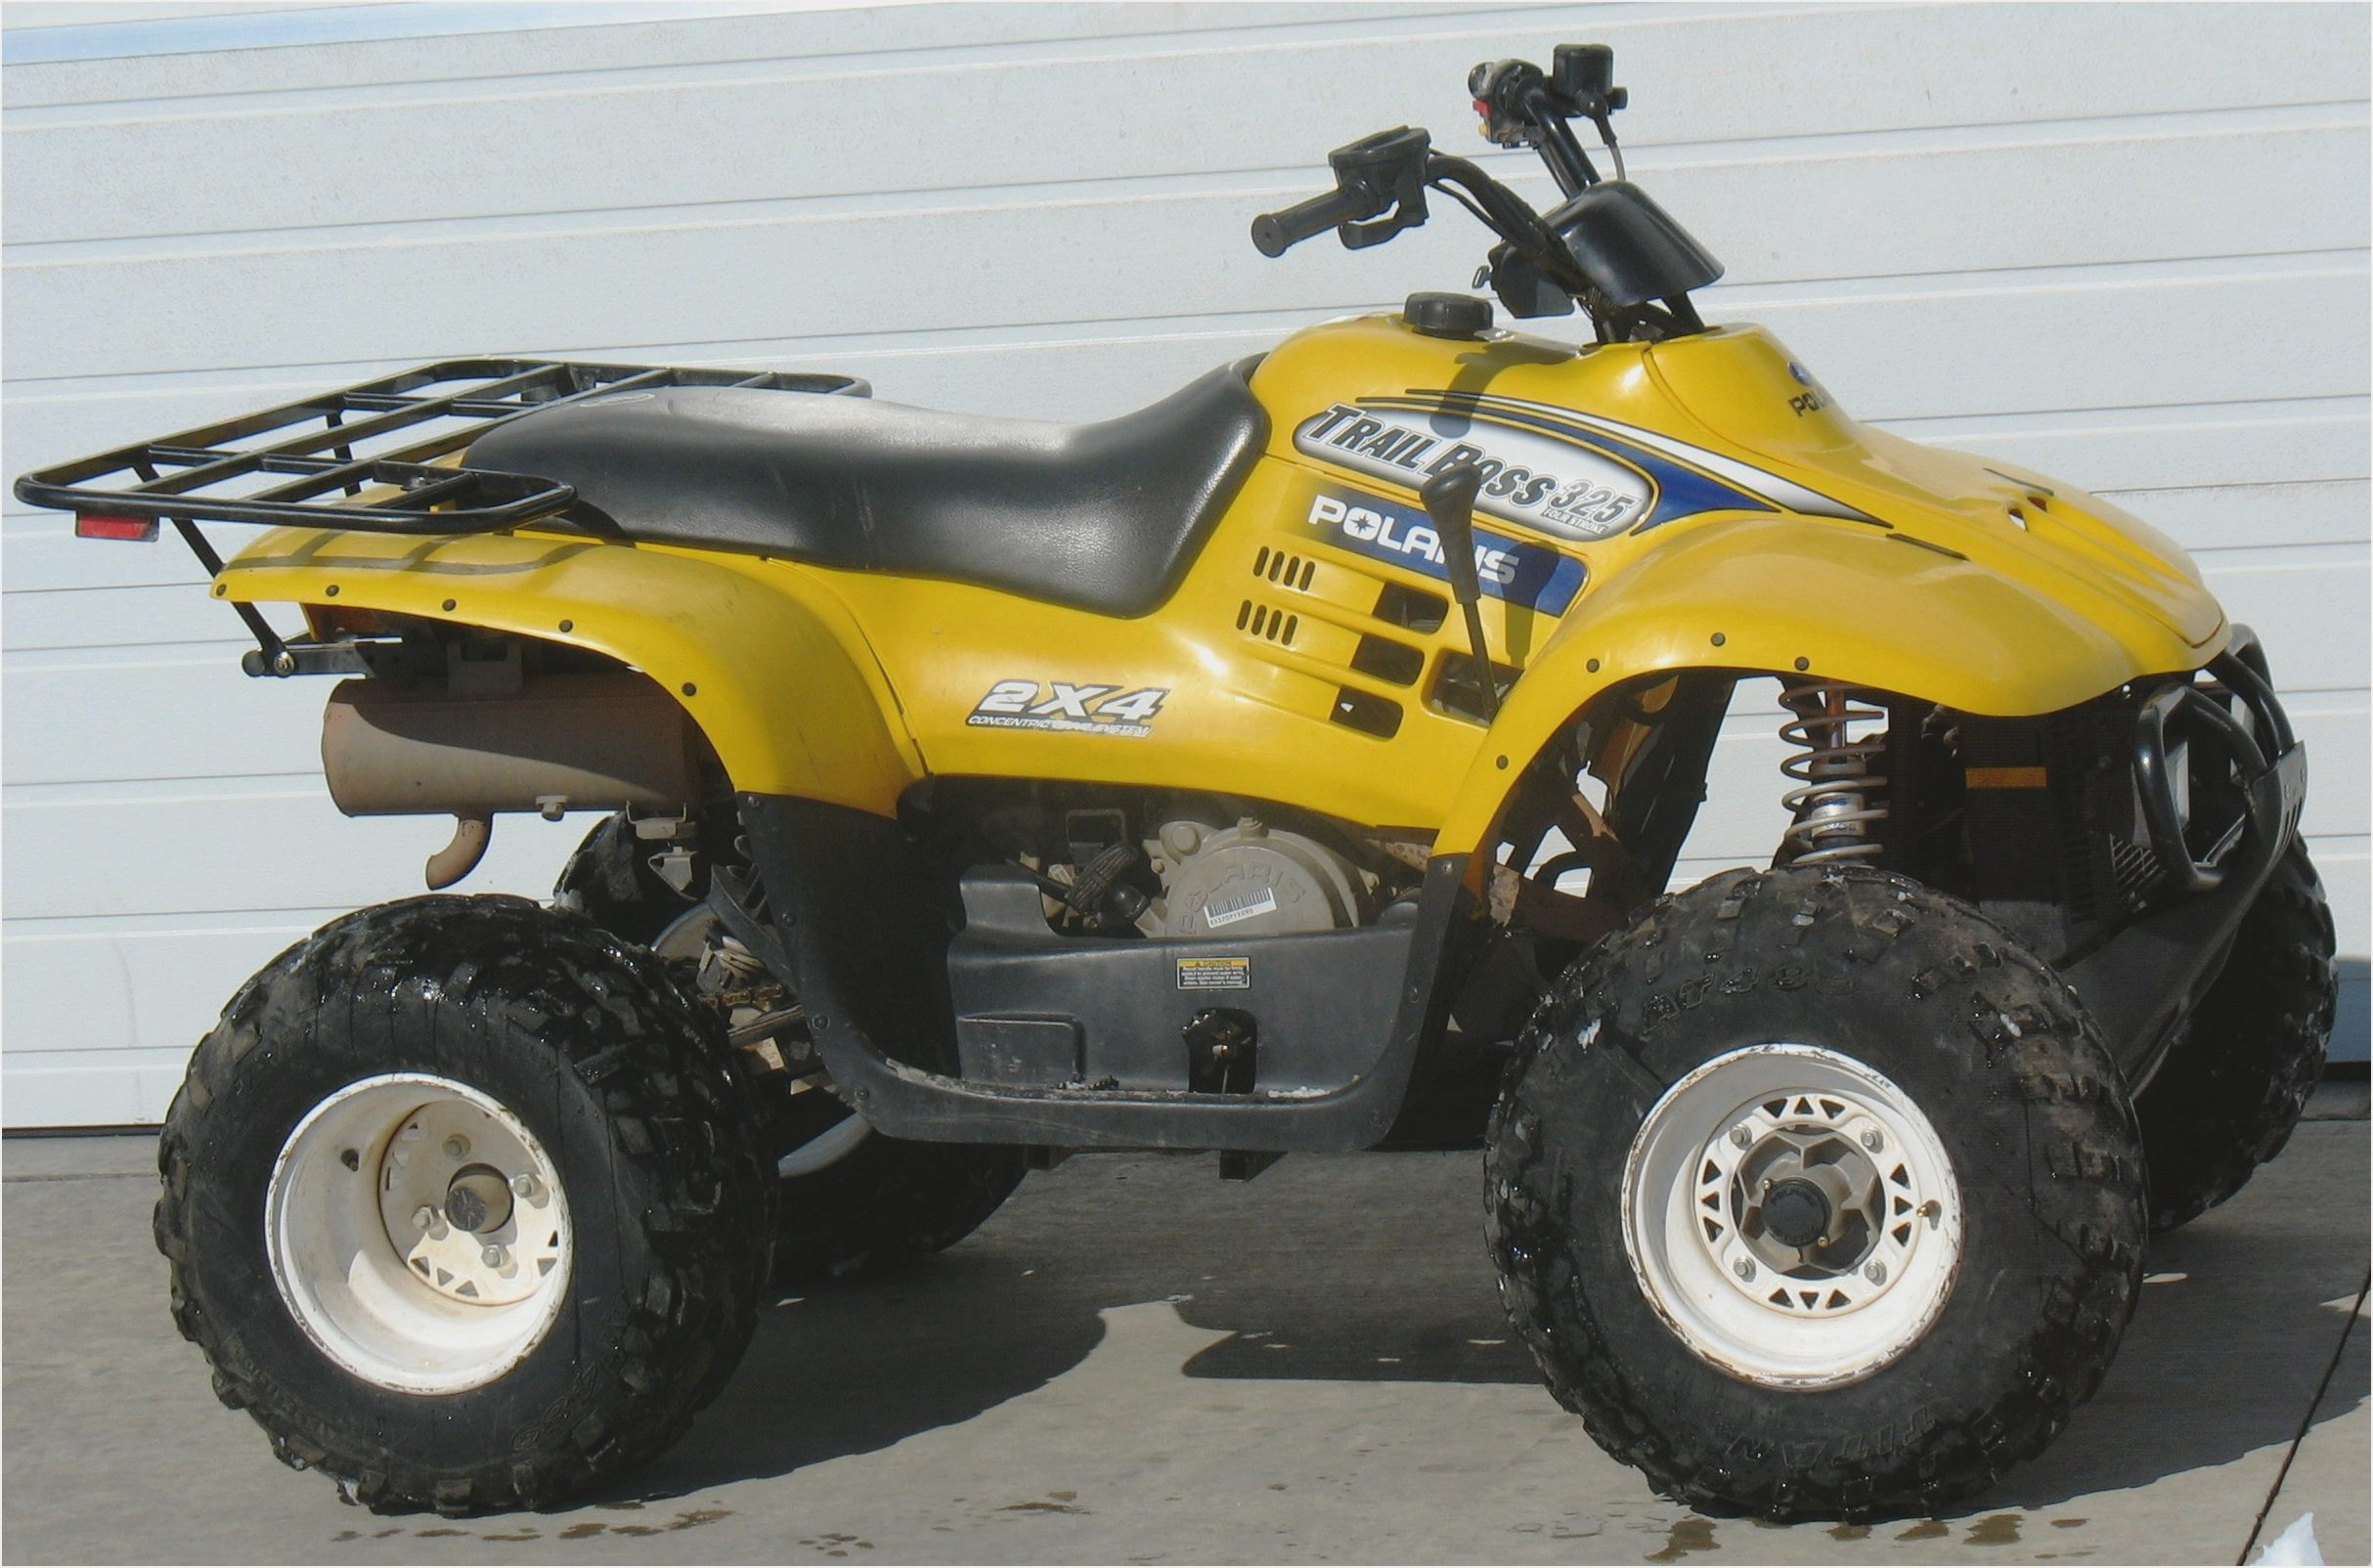 polaris magnum 500 2000 moto 2000 polaris magnum 325 wiring diagram polaris 325 magnum owner's free wiring diagram 2002 polaris magnum 325 at alyssarenee.co